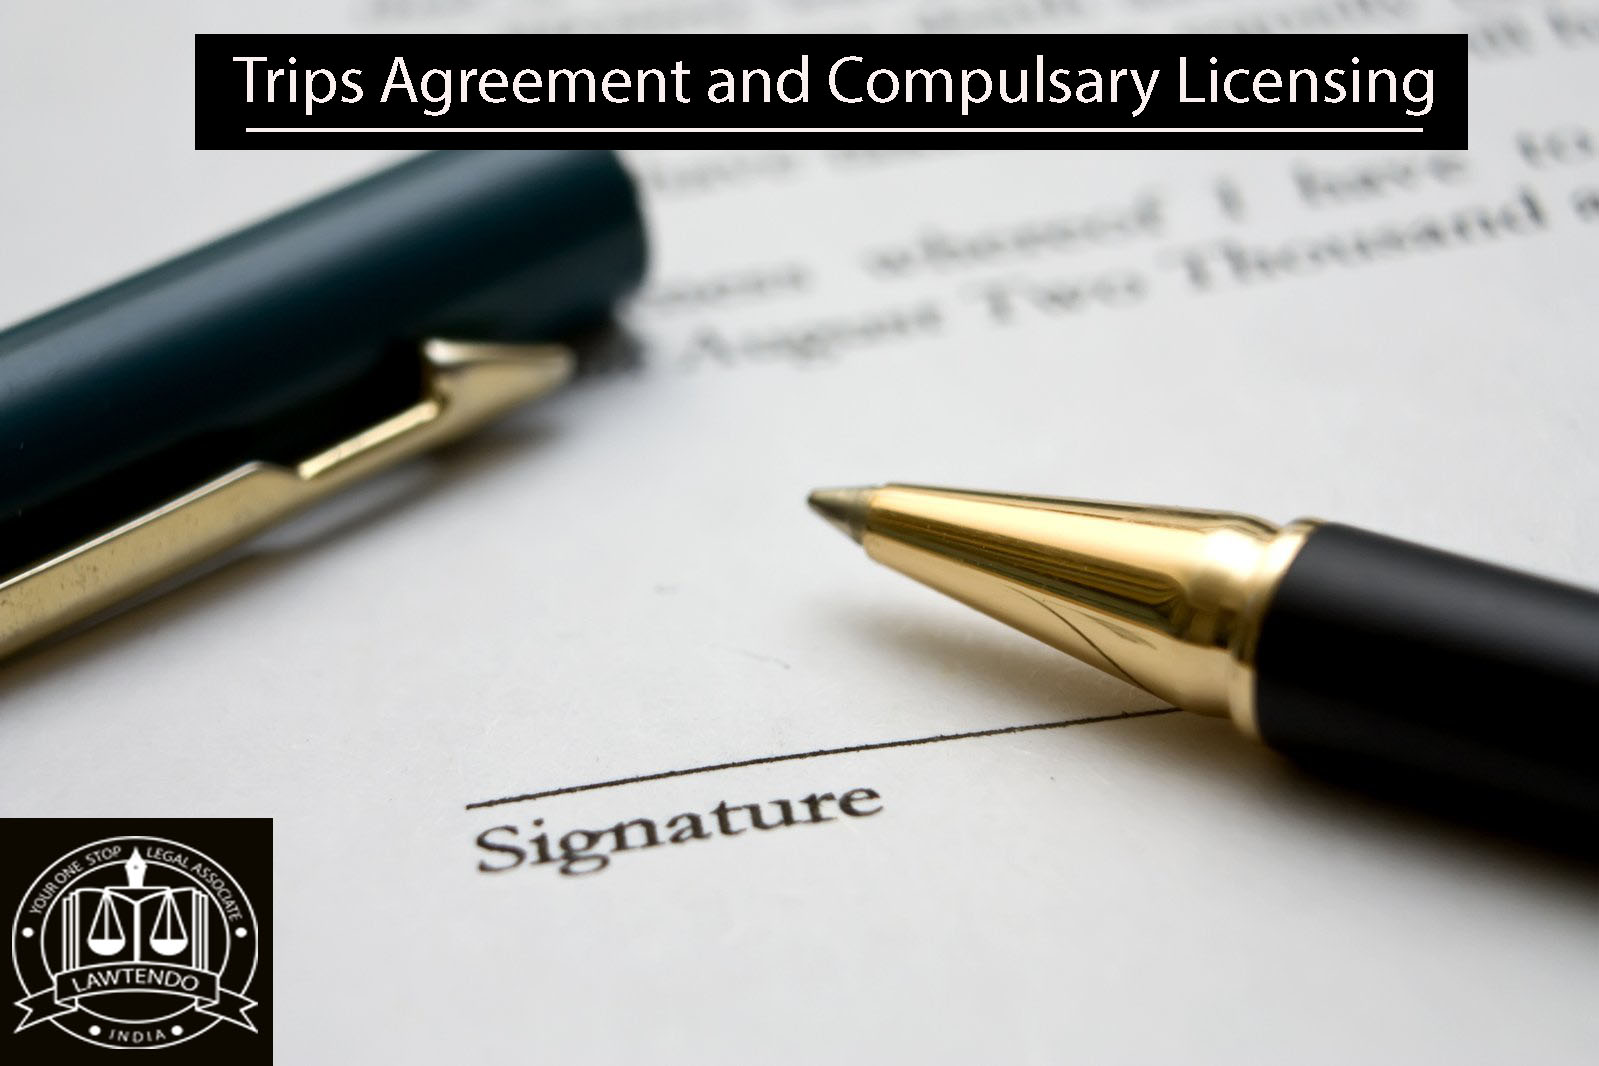 Trips Agreement and Compulsory Licensing